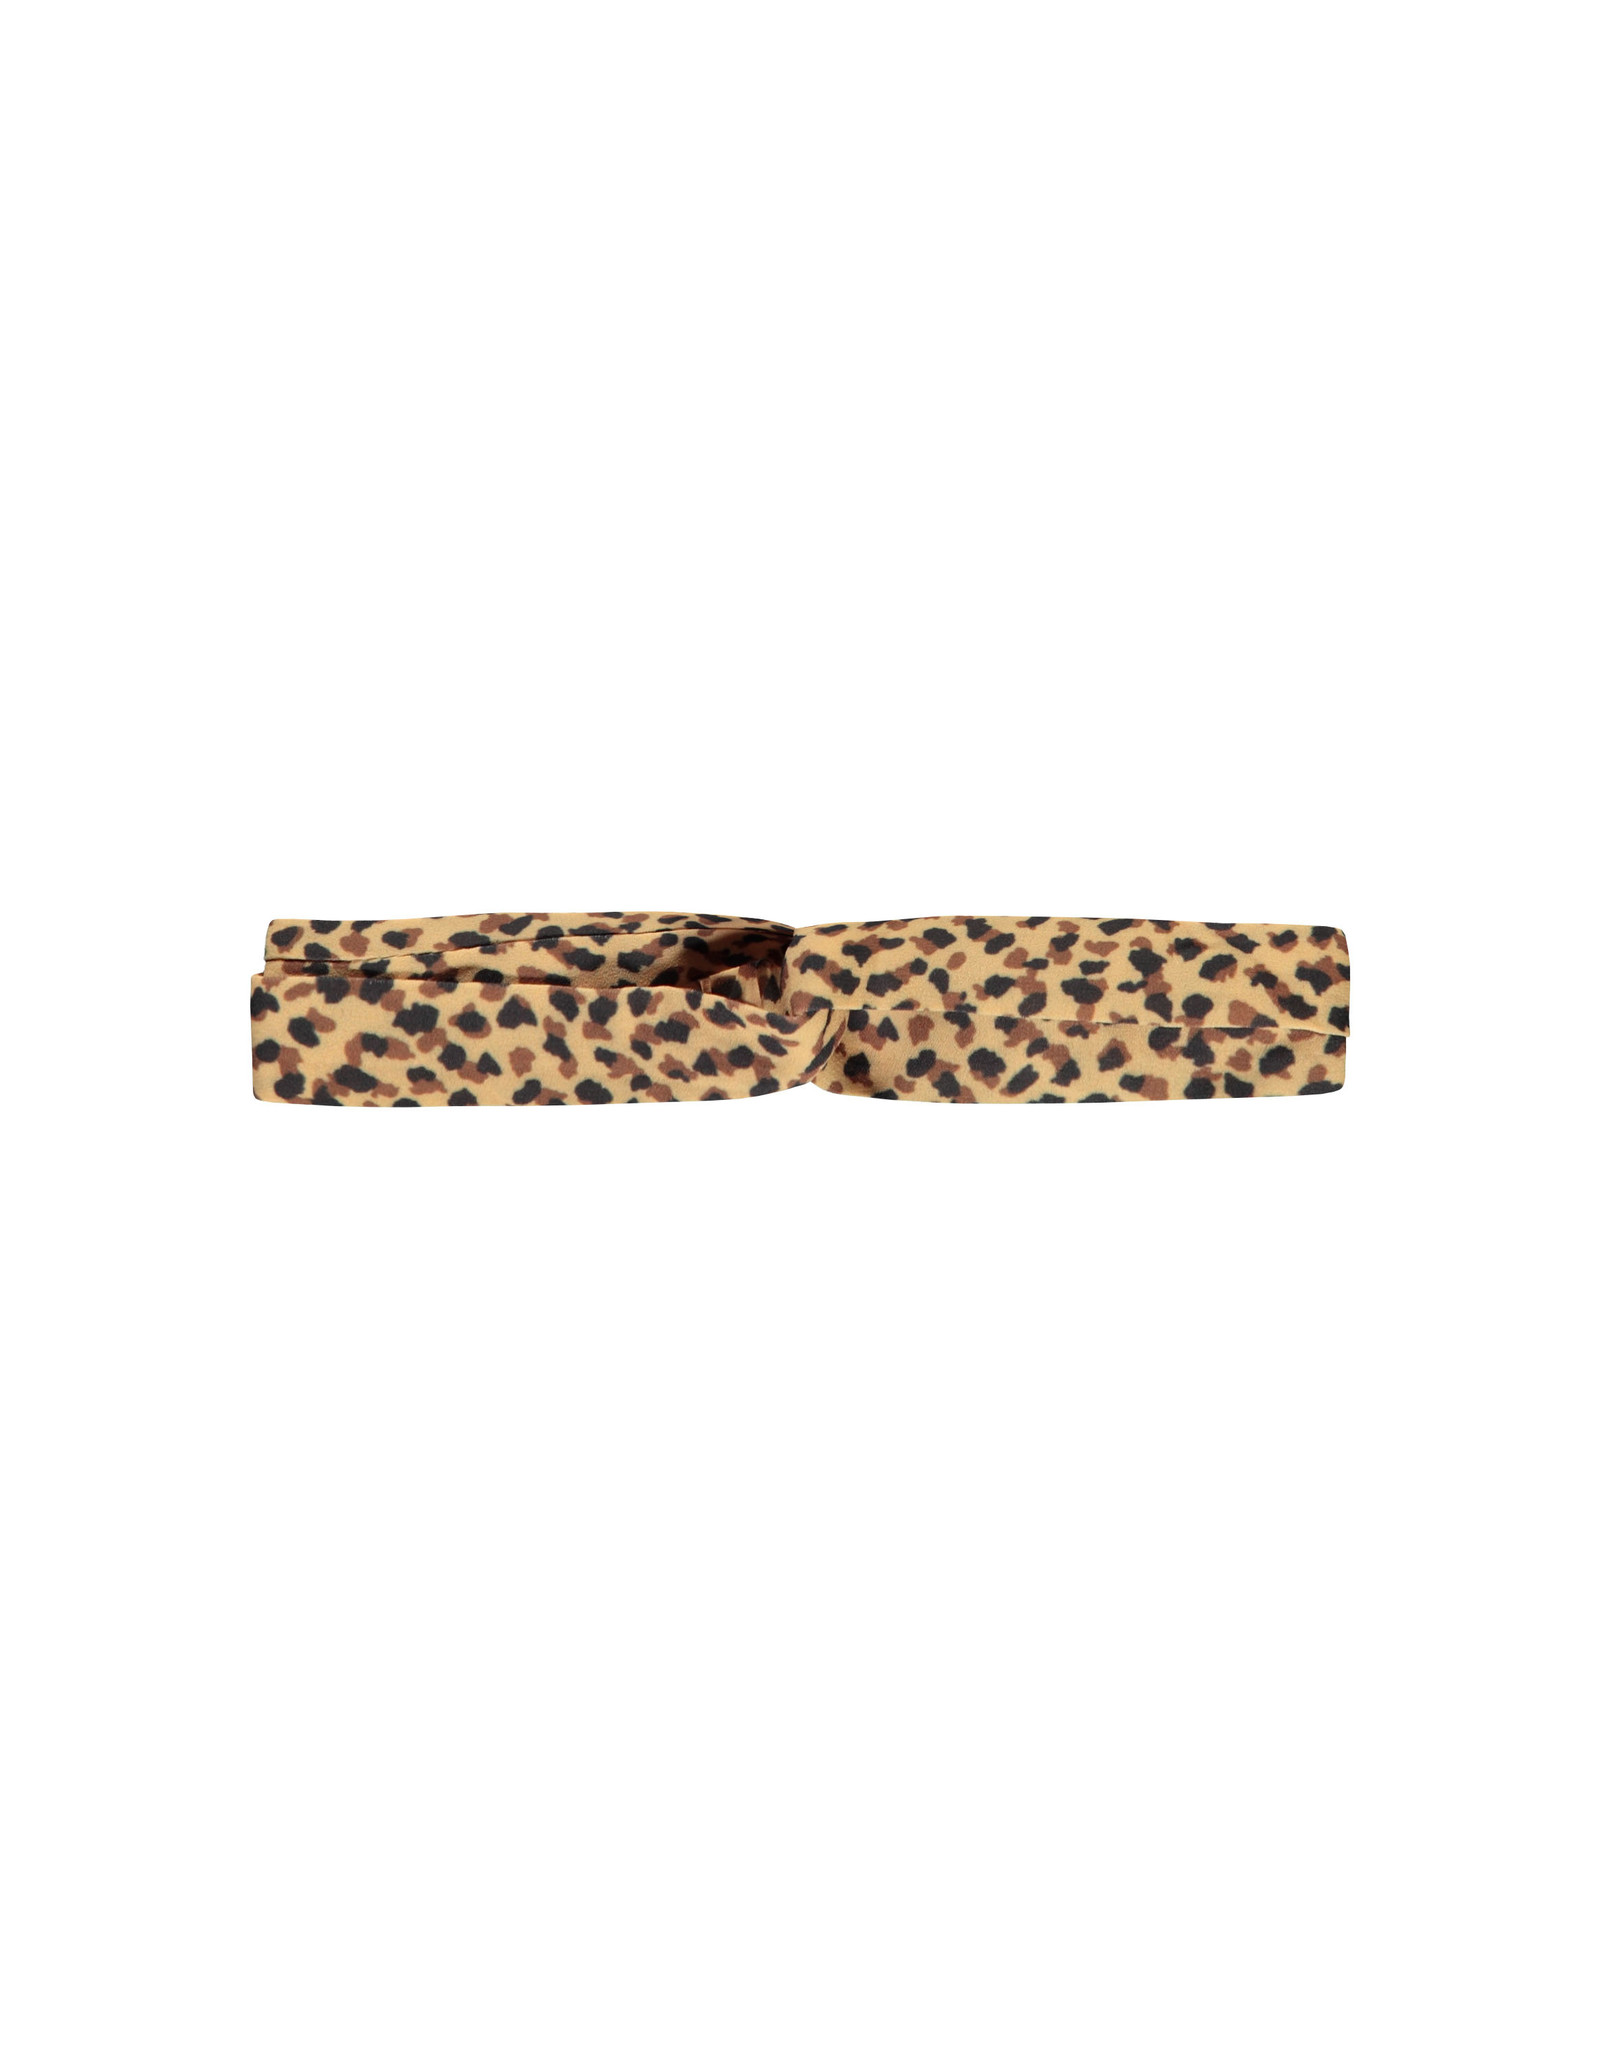 Flo baby baby girls woven hairband Panther